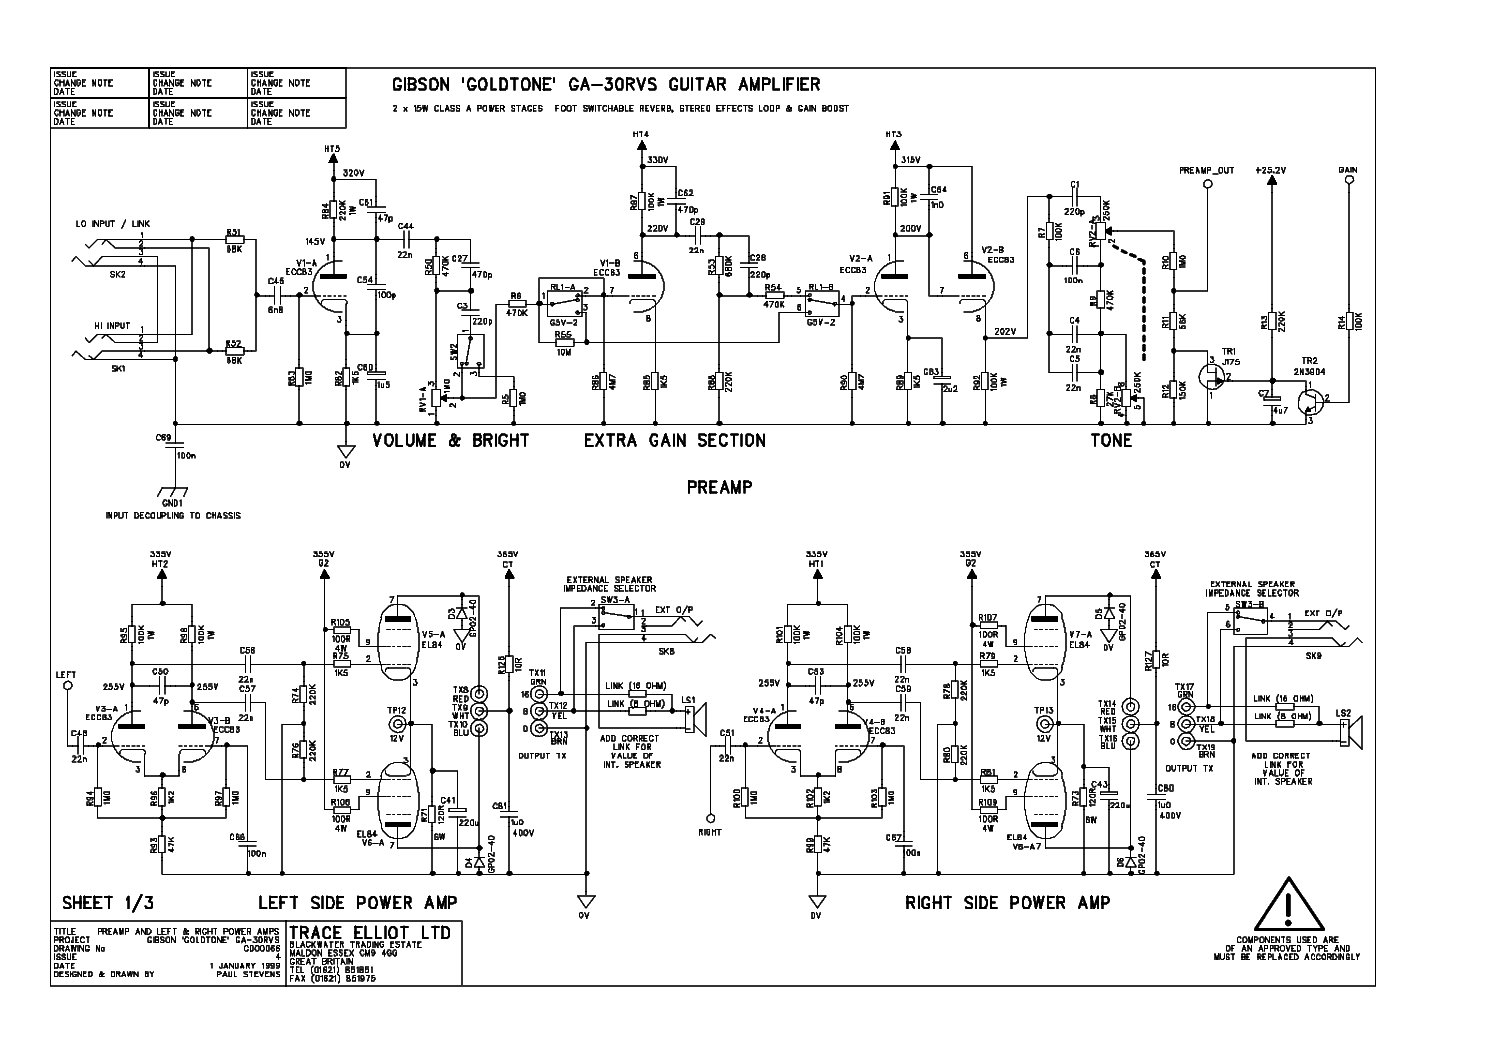 suzuki rm 250 wiring diagram amplifier schematics | wiring library